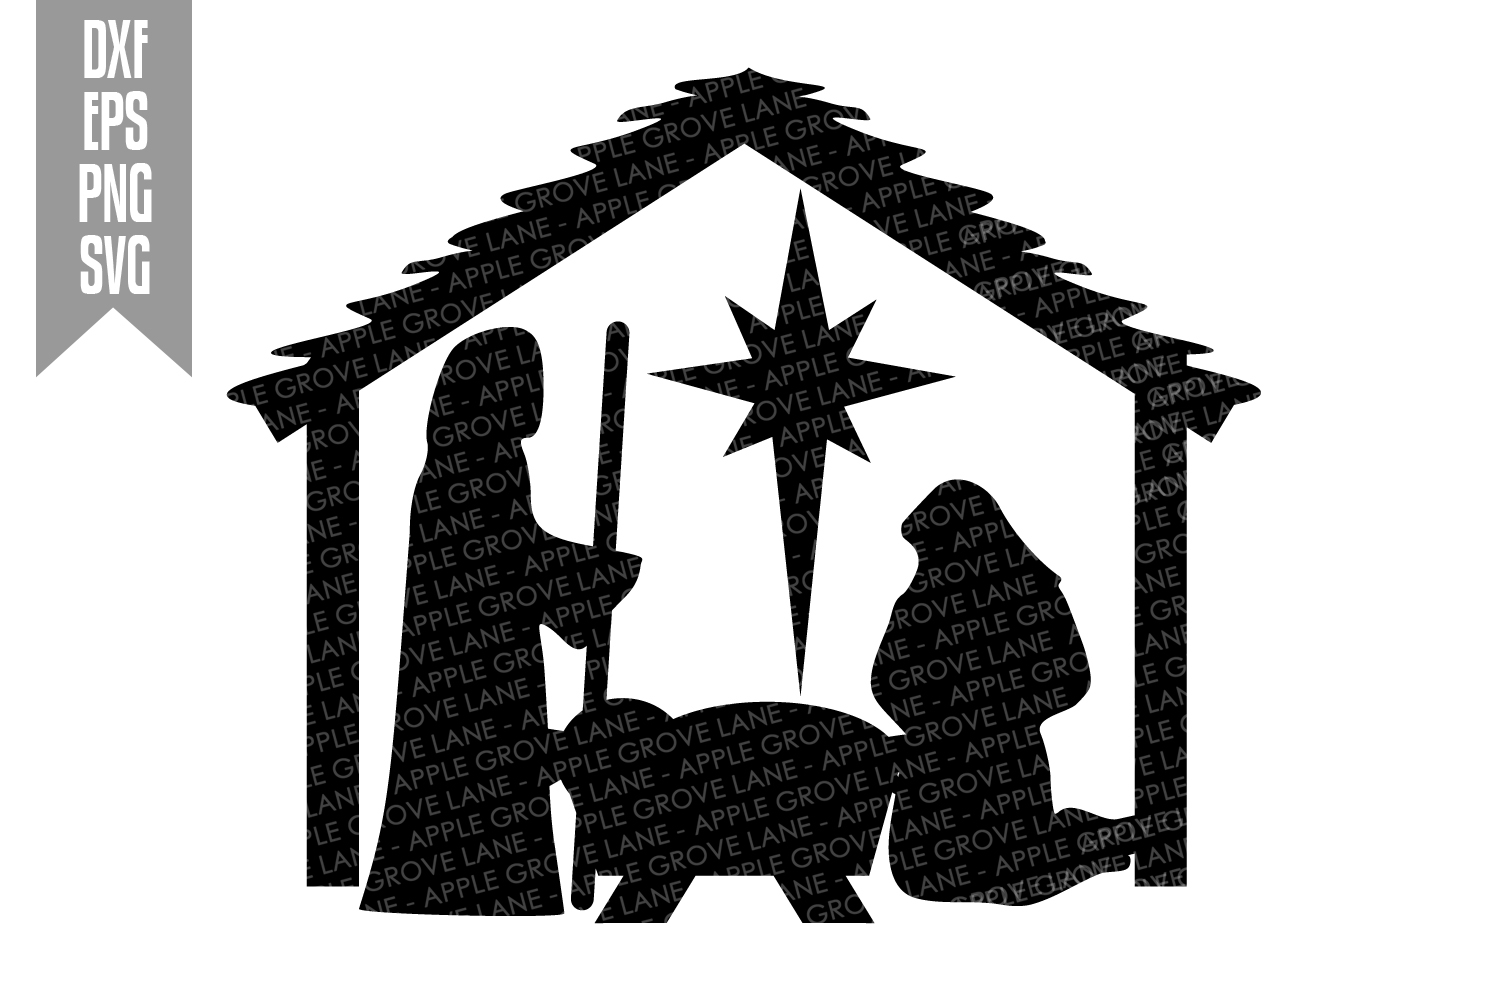 Nativity Svg Bundle - 9 designs included - Svg Cut Files example image 5